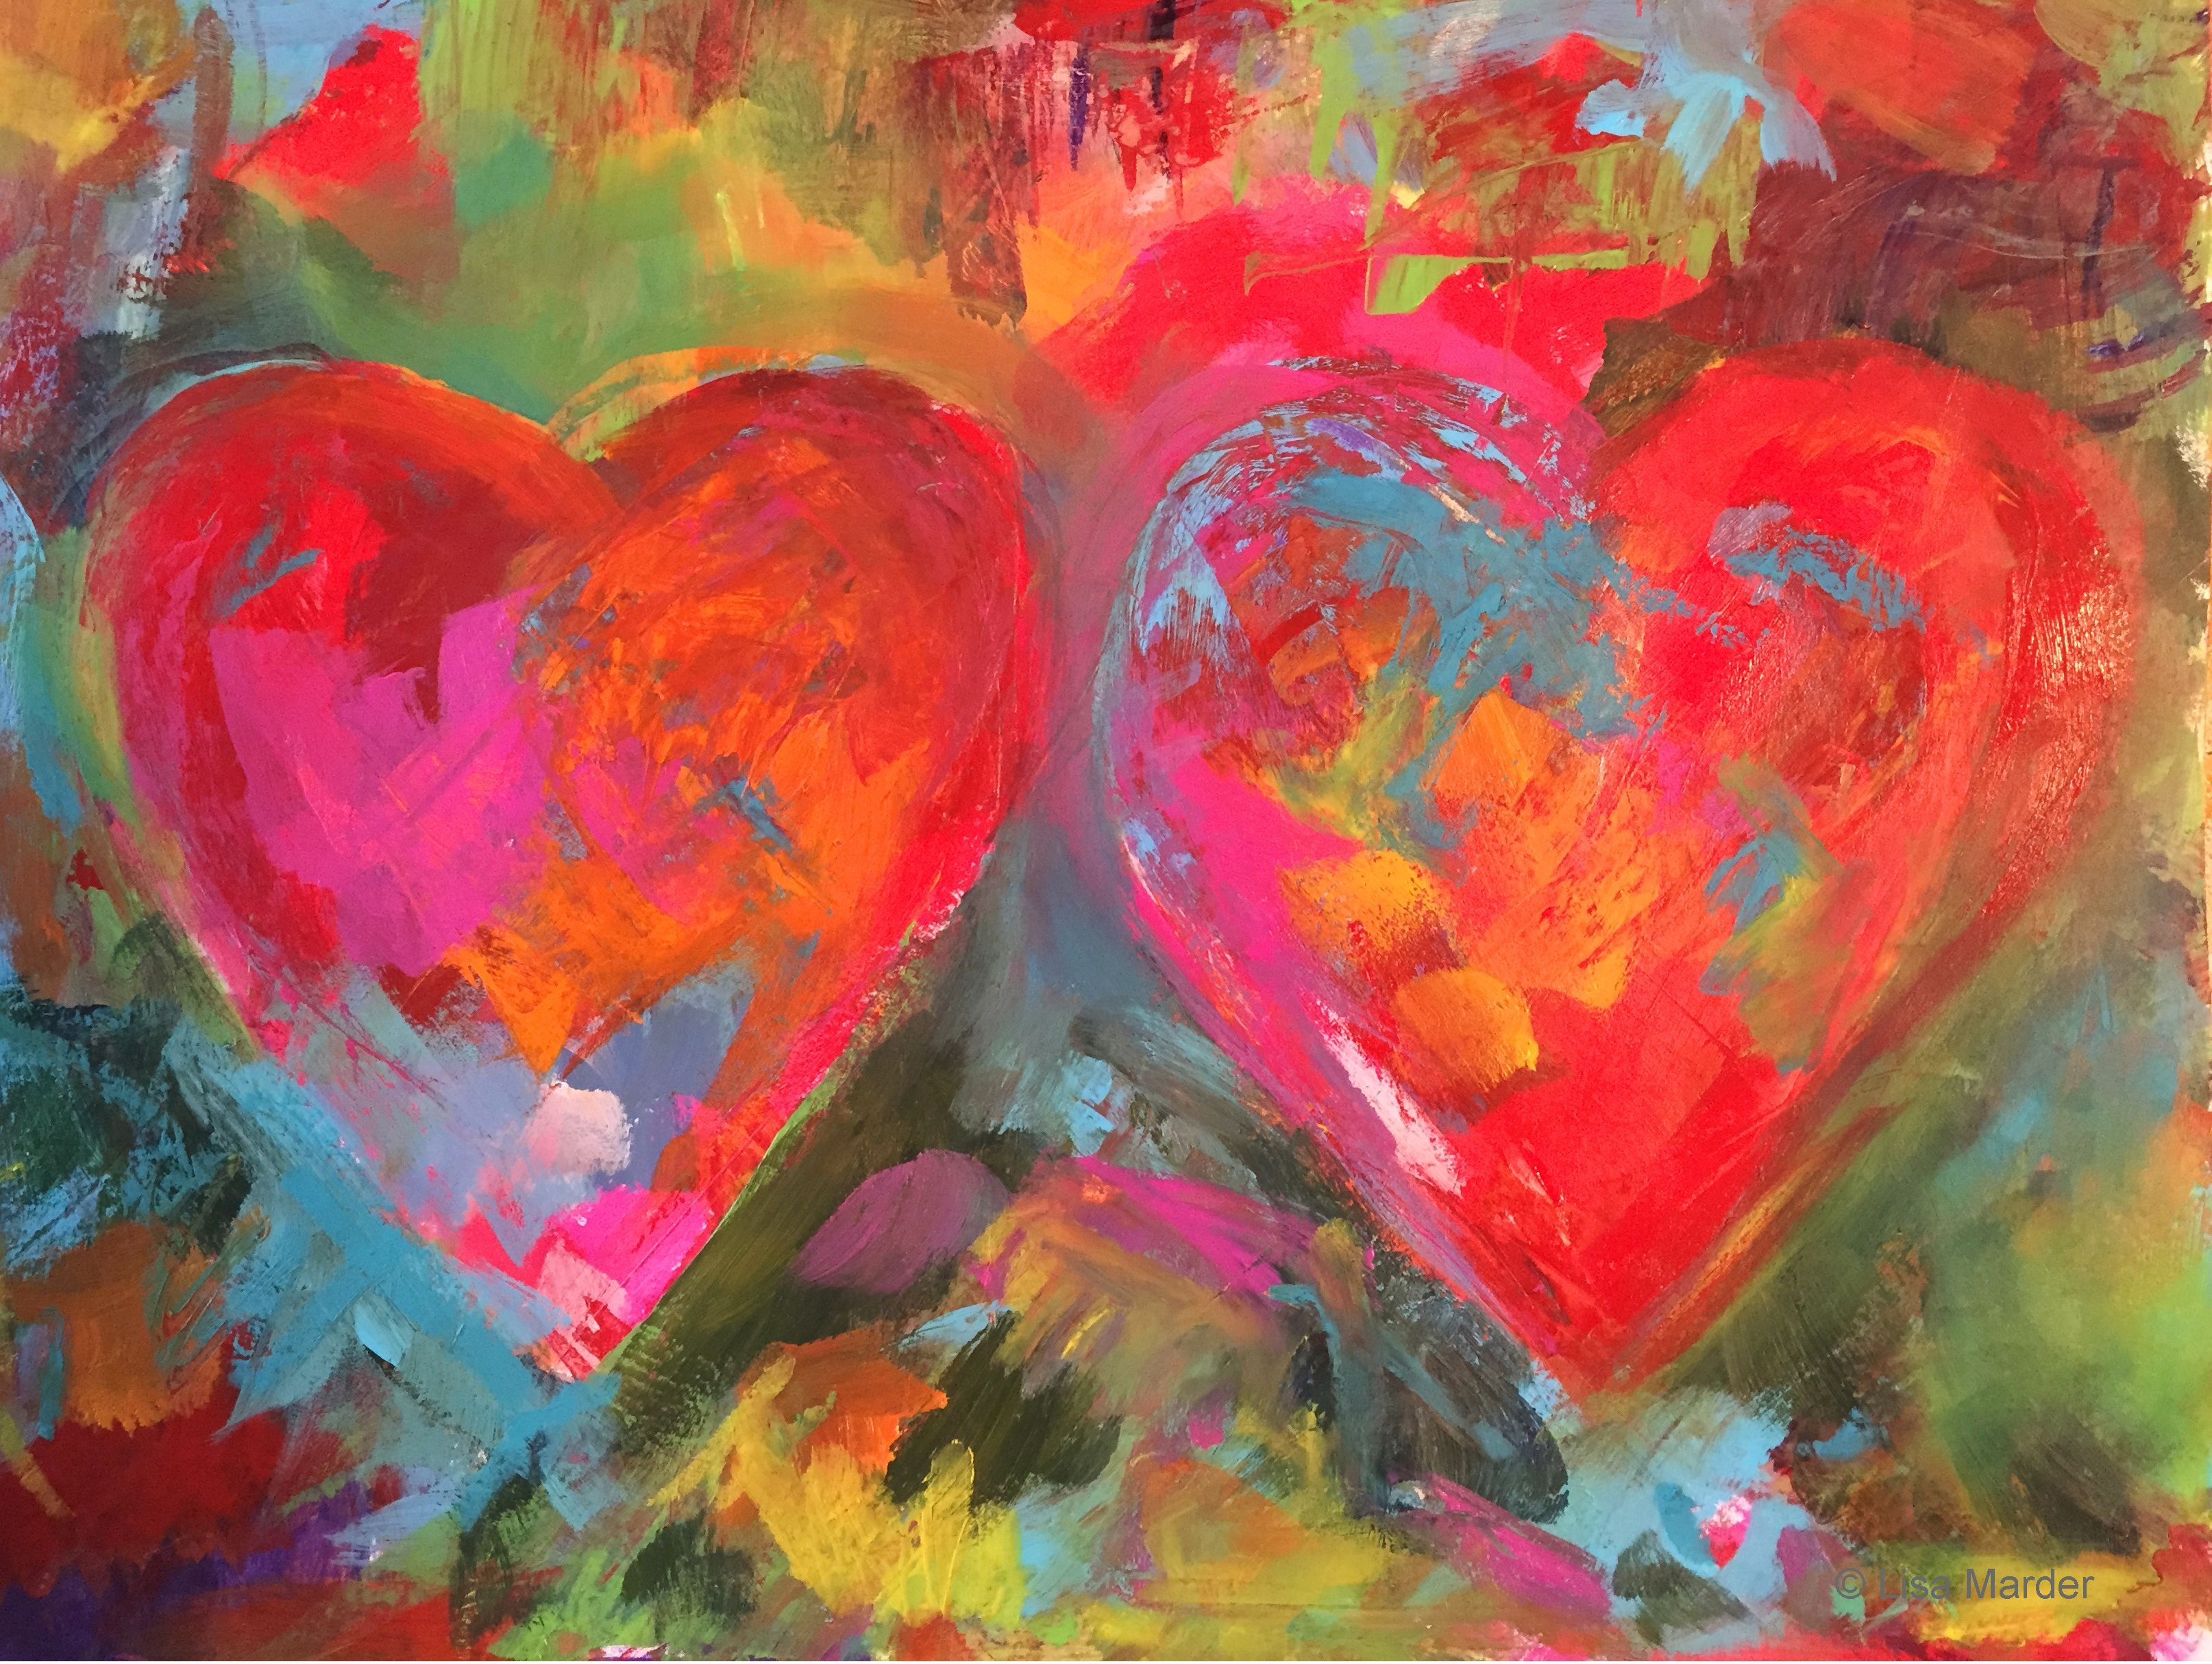 Paint Abstract Hearts In The Style Of Jim Dine With